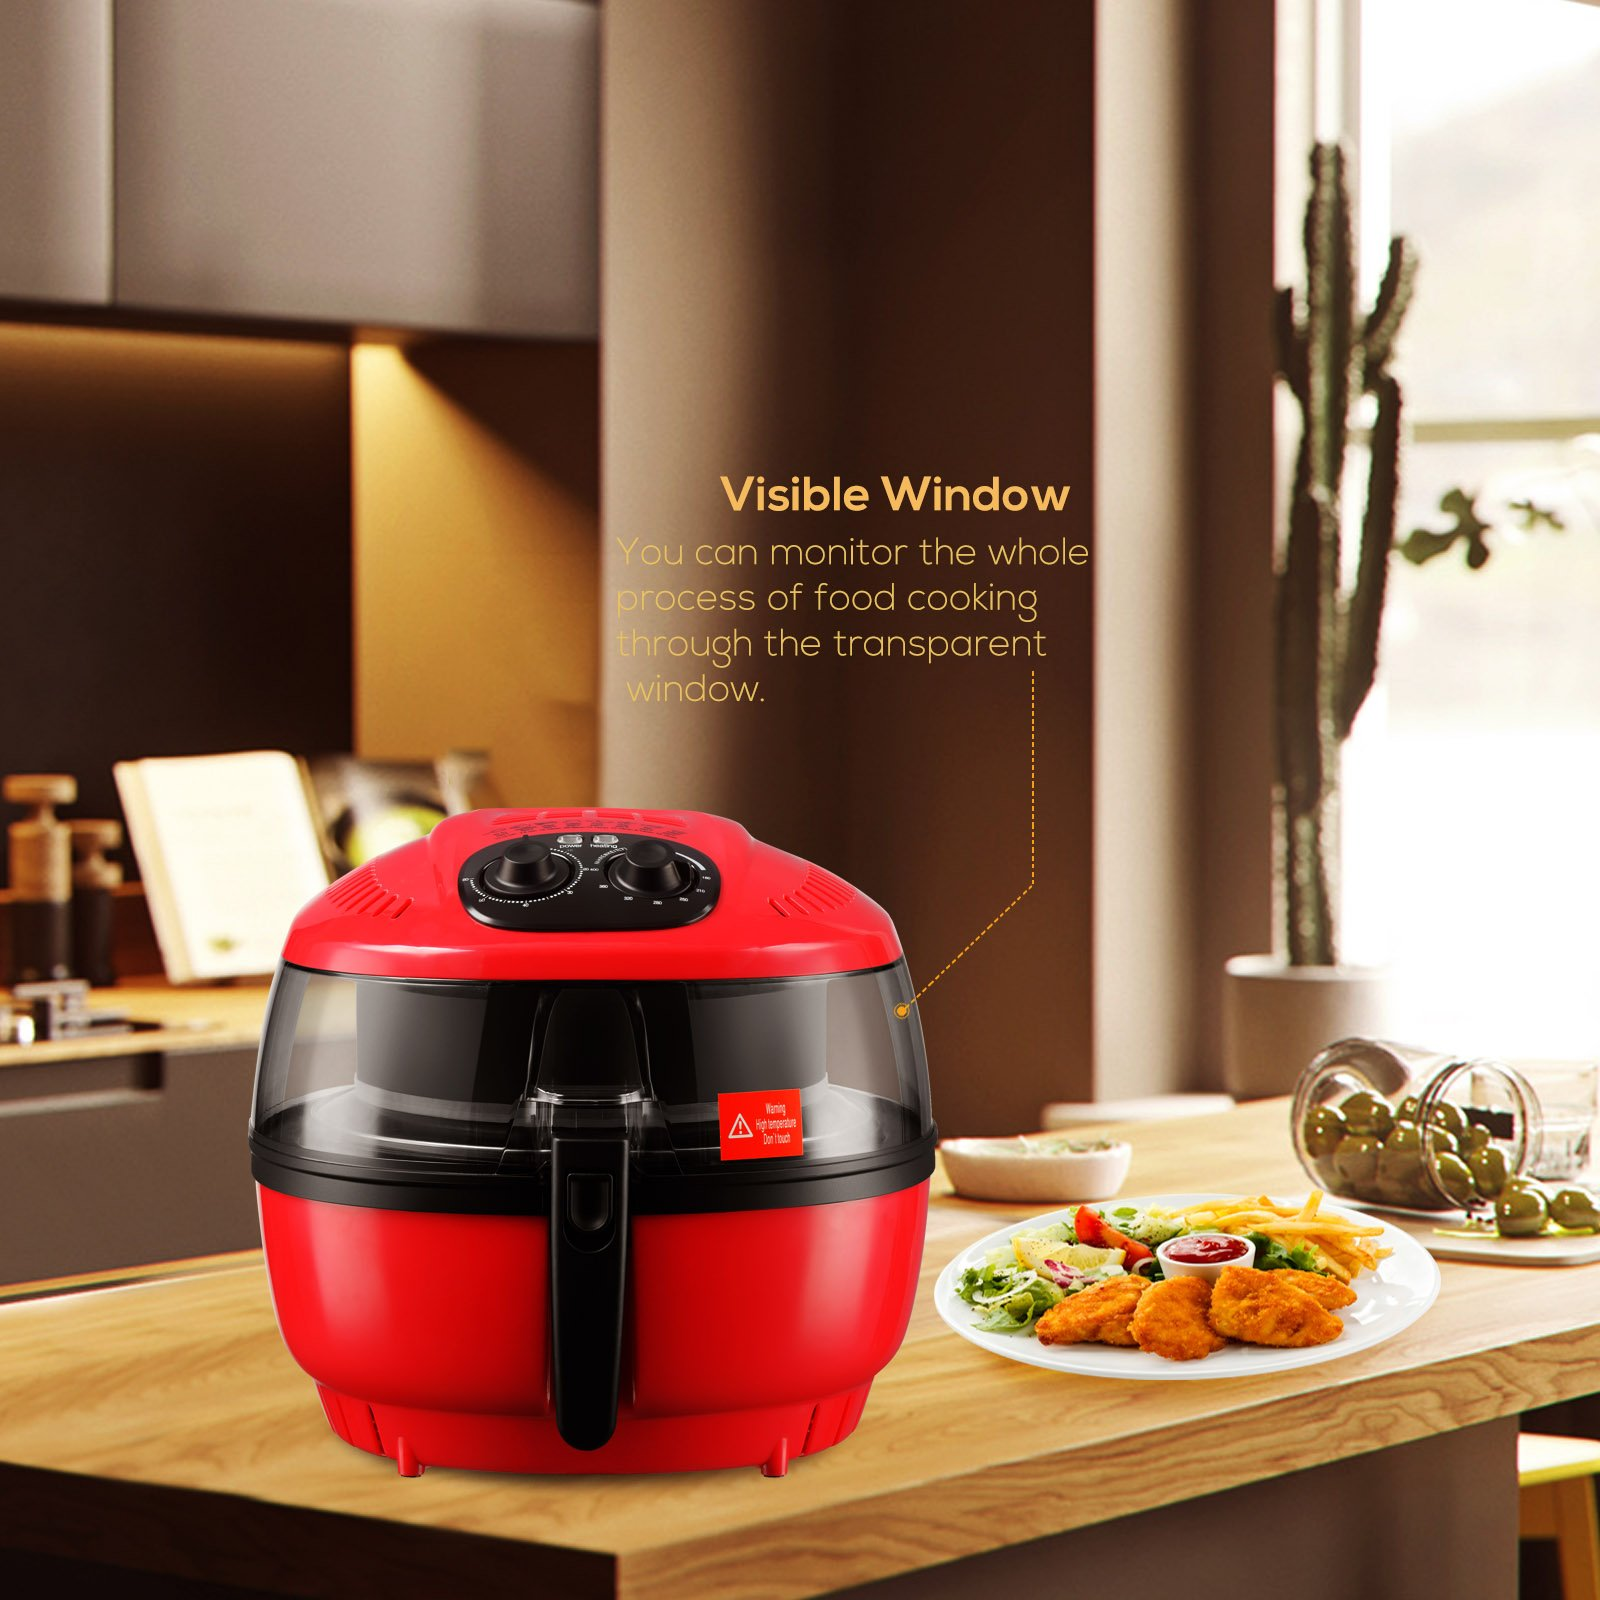 7.4QT XL Large Red Air Fryer-KUPPET 1400W Oilless Hot Air/Deep Fryer W/Rapid Hot Air Circulation System-Timer & Temperature Control-8 Cooking Presets-Included Recipe, Steamer, Fryer Pan